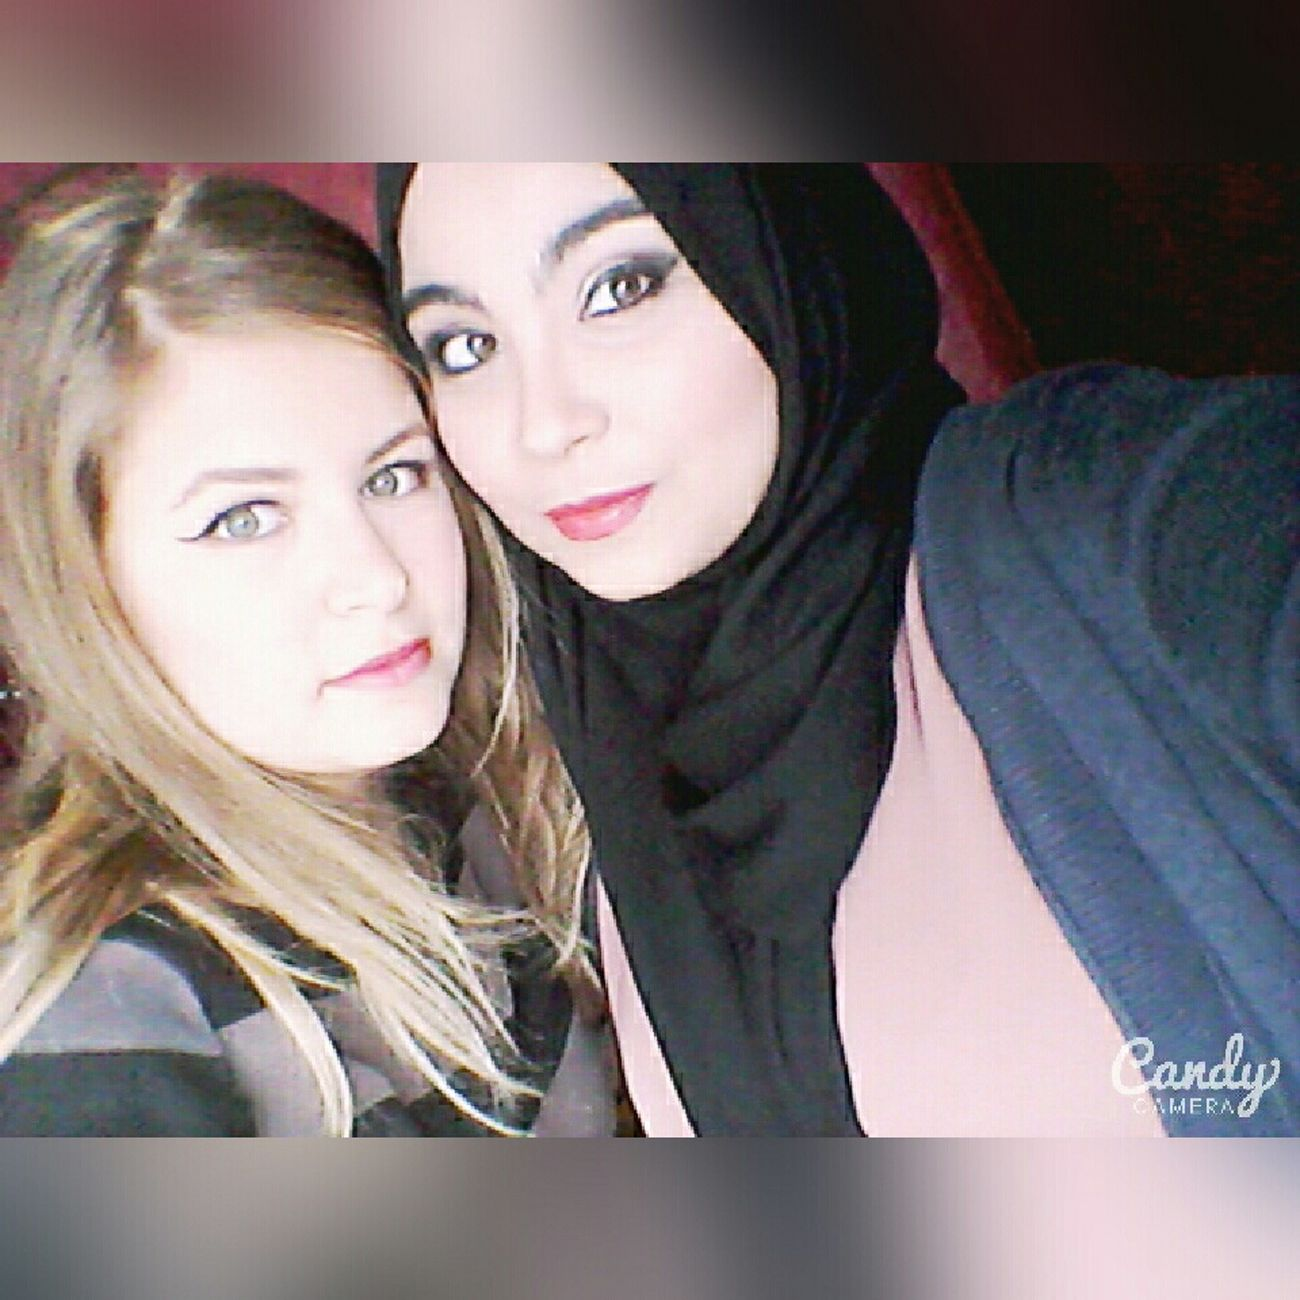 Meeting the georgous friend ever 💕 Btw she's a make up artist and the make up on me is done by her 👄💄 Makeup Smokey Eyes Friends ❤ Love 💝